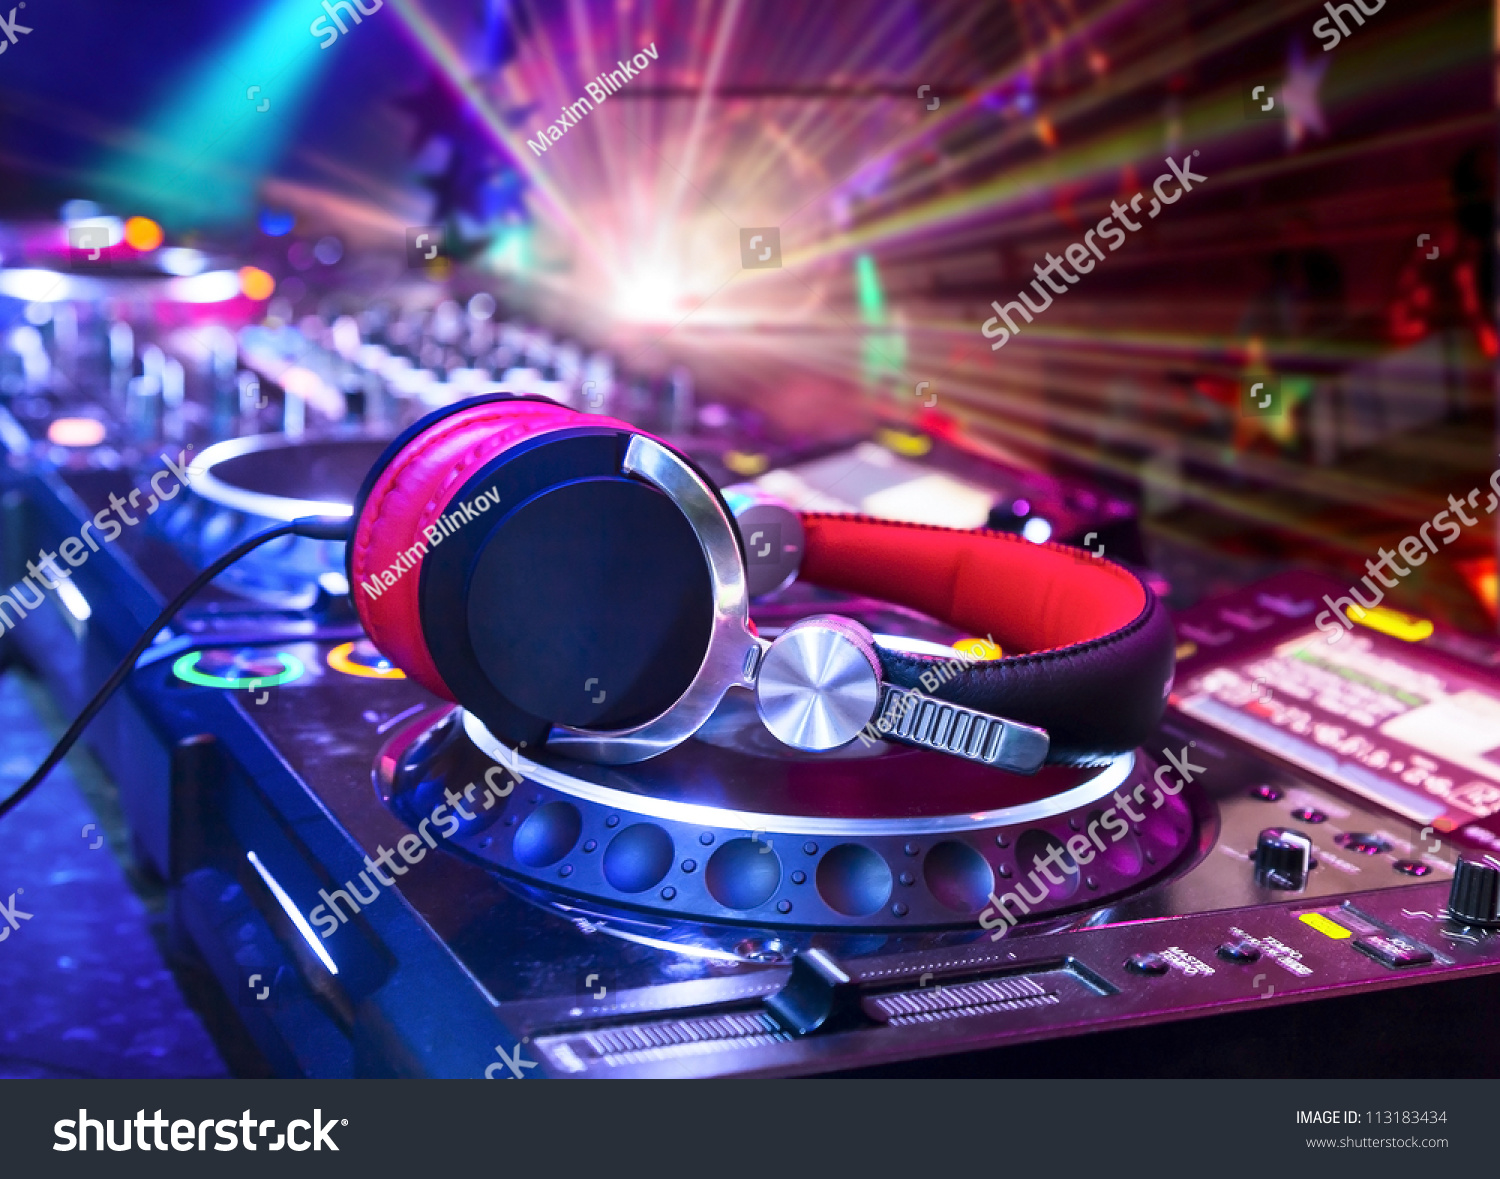 Dj Mixer With Headphones At Nightclub In The Background